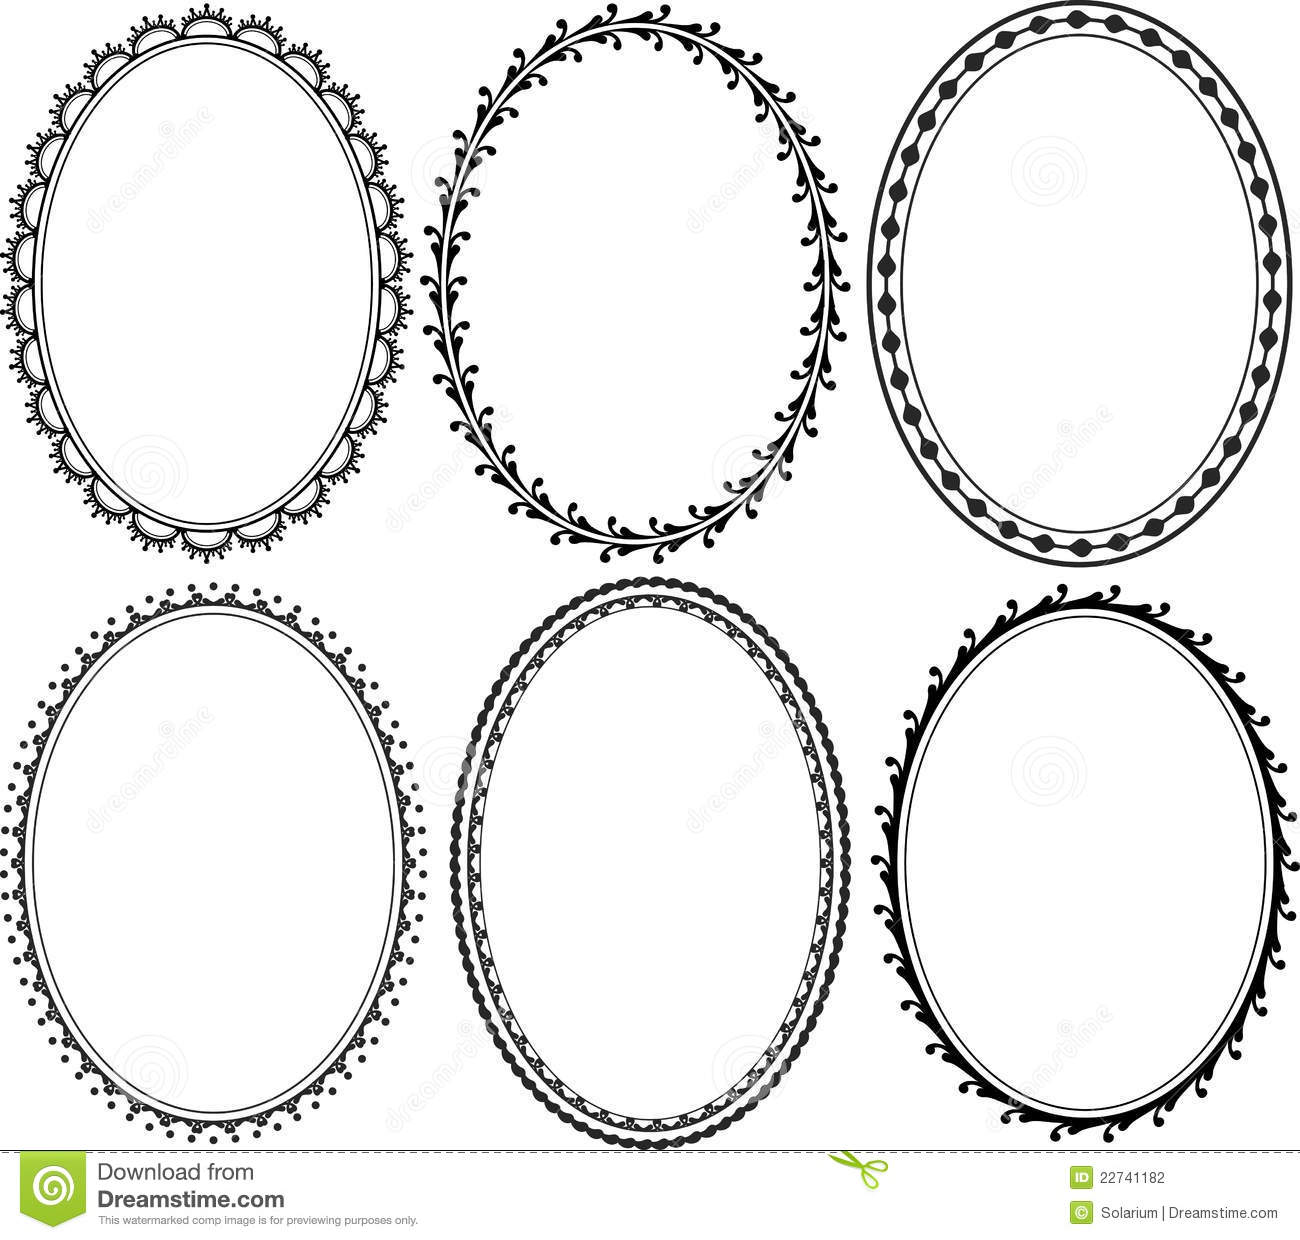 Pin Clipart Cadres Bordures Image Gif on Pinterest